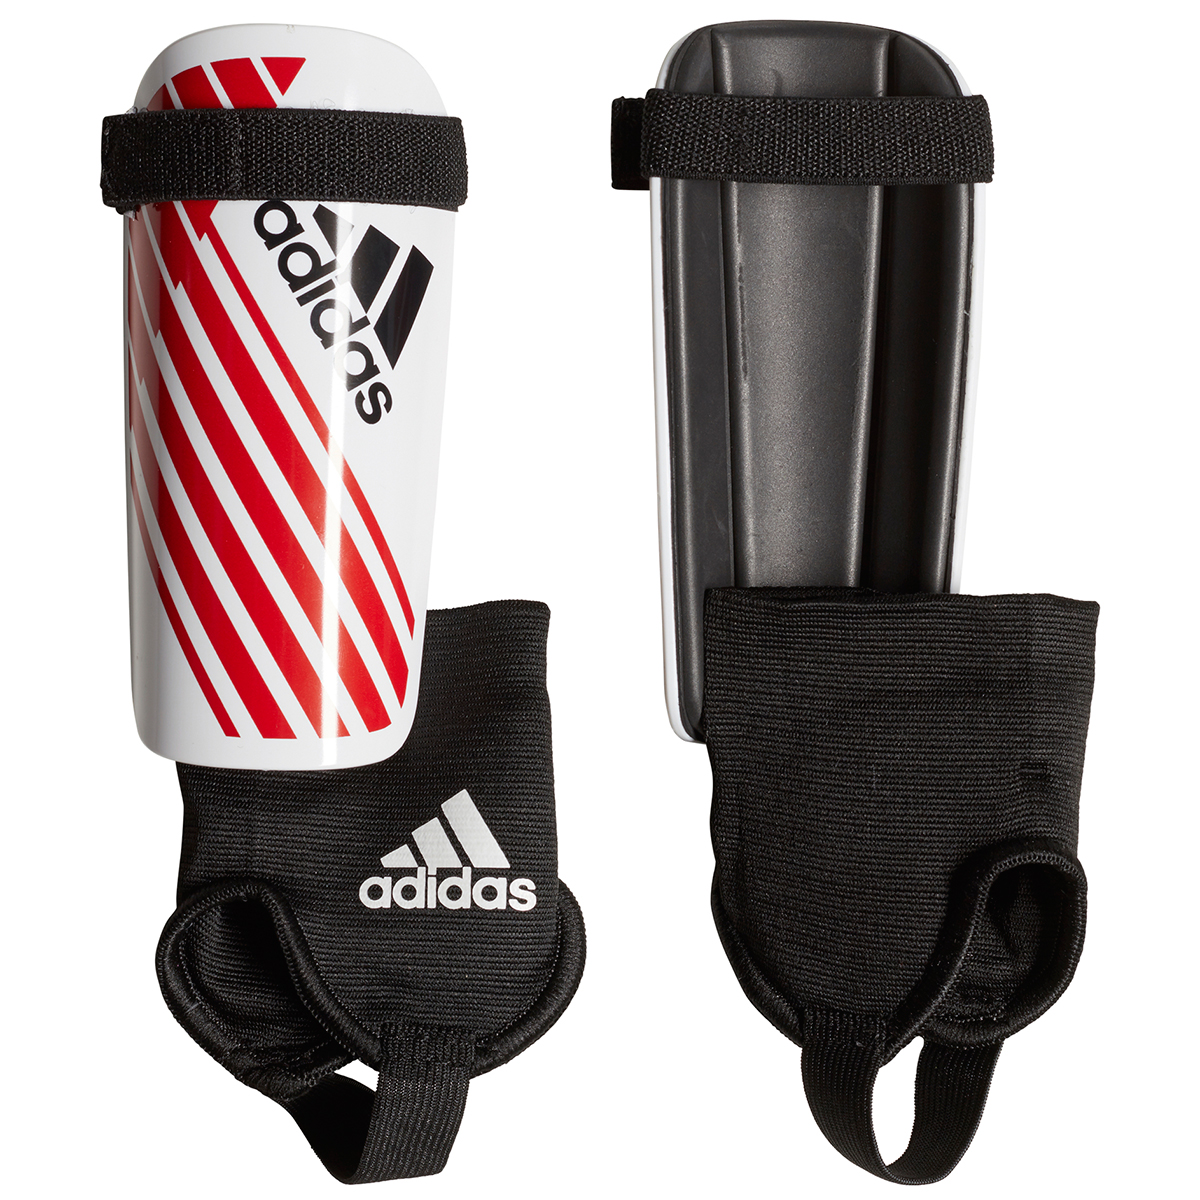 Adidas X Youth Shin Guards - White, L